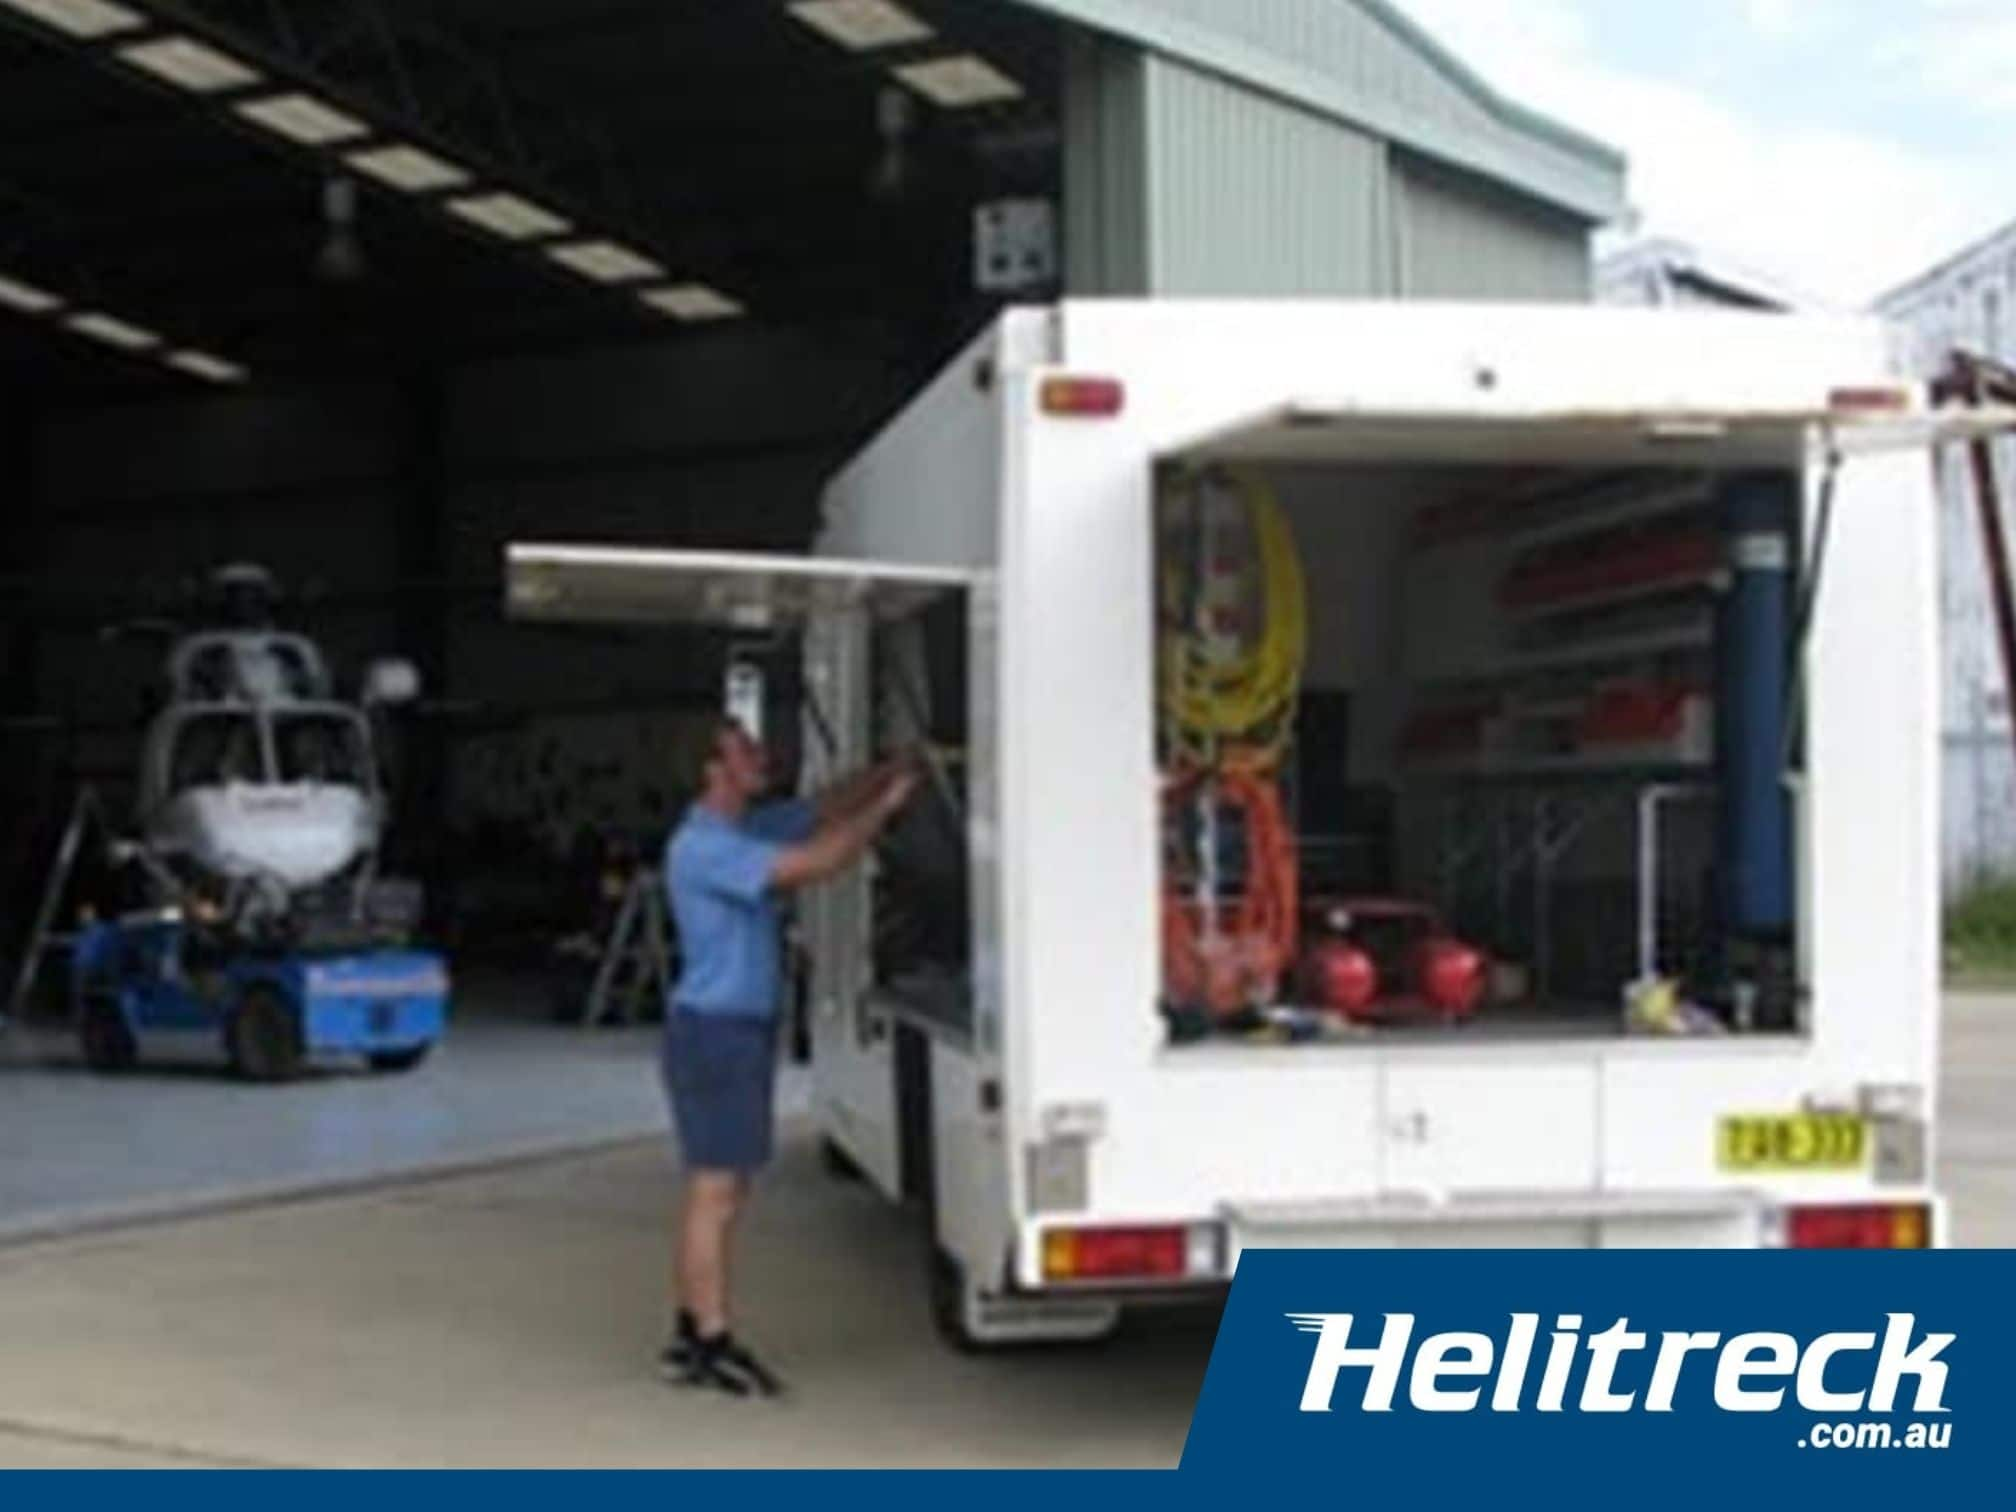 Helicopter-Remote-Area-Maintenance-1